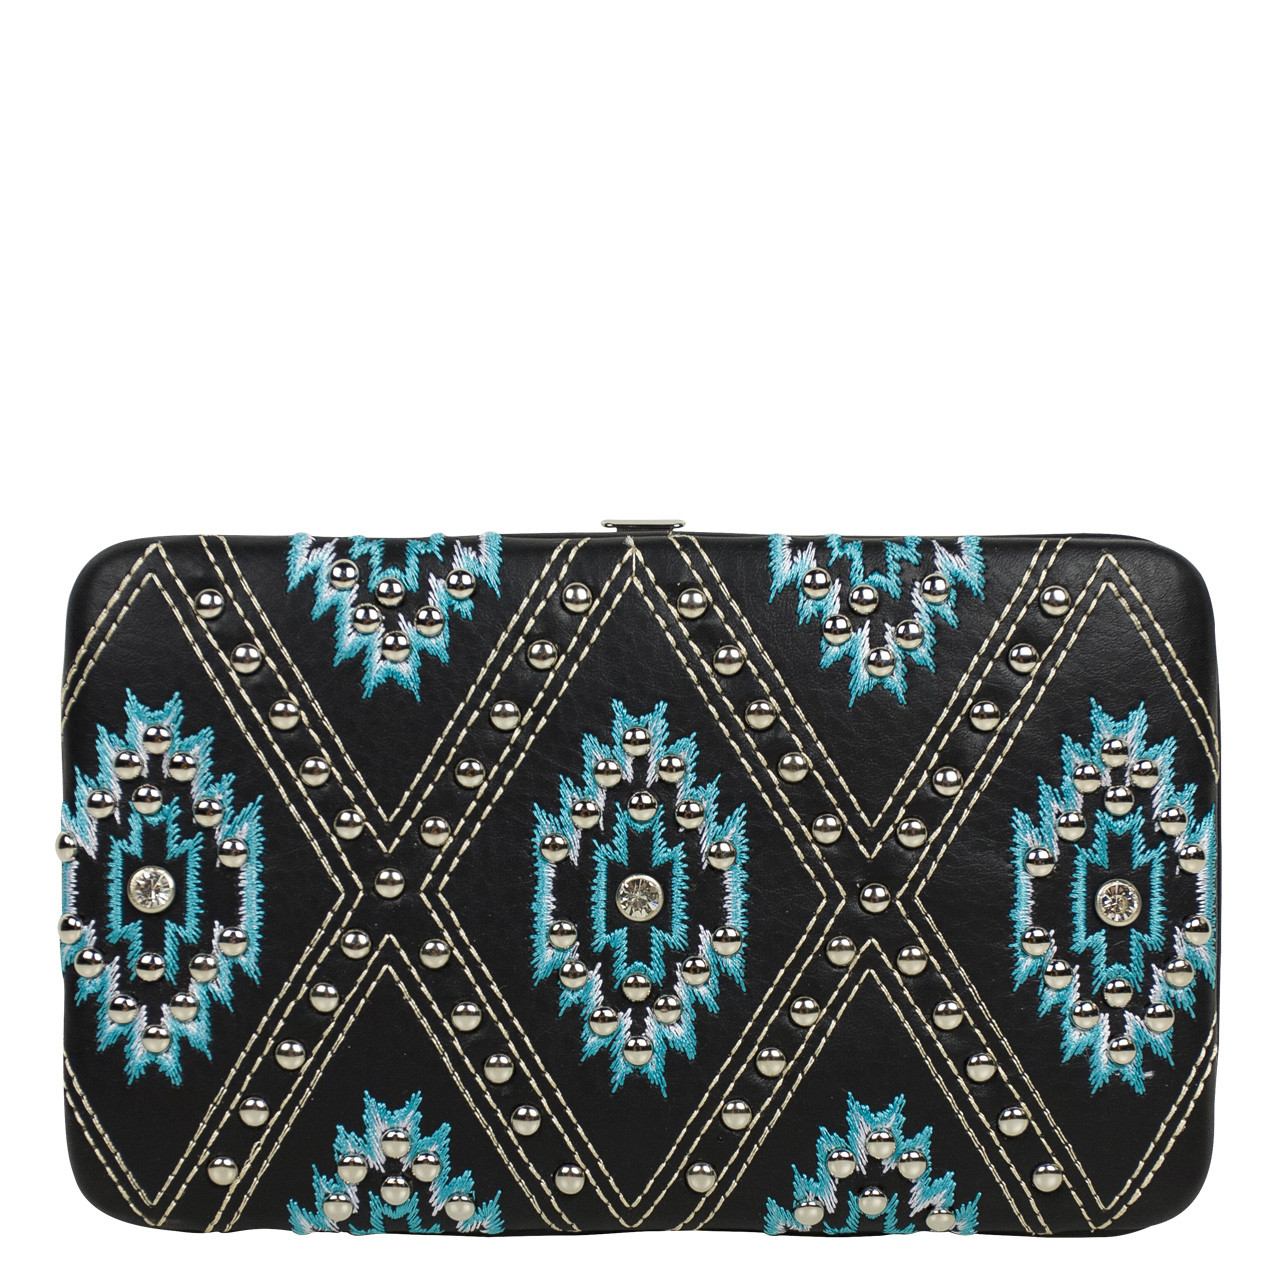 TURQUOISE STUDDED RHINESTONE LOOK FLAT THICK WALLET FW2-12122TRQ